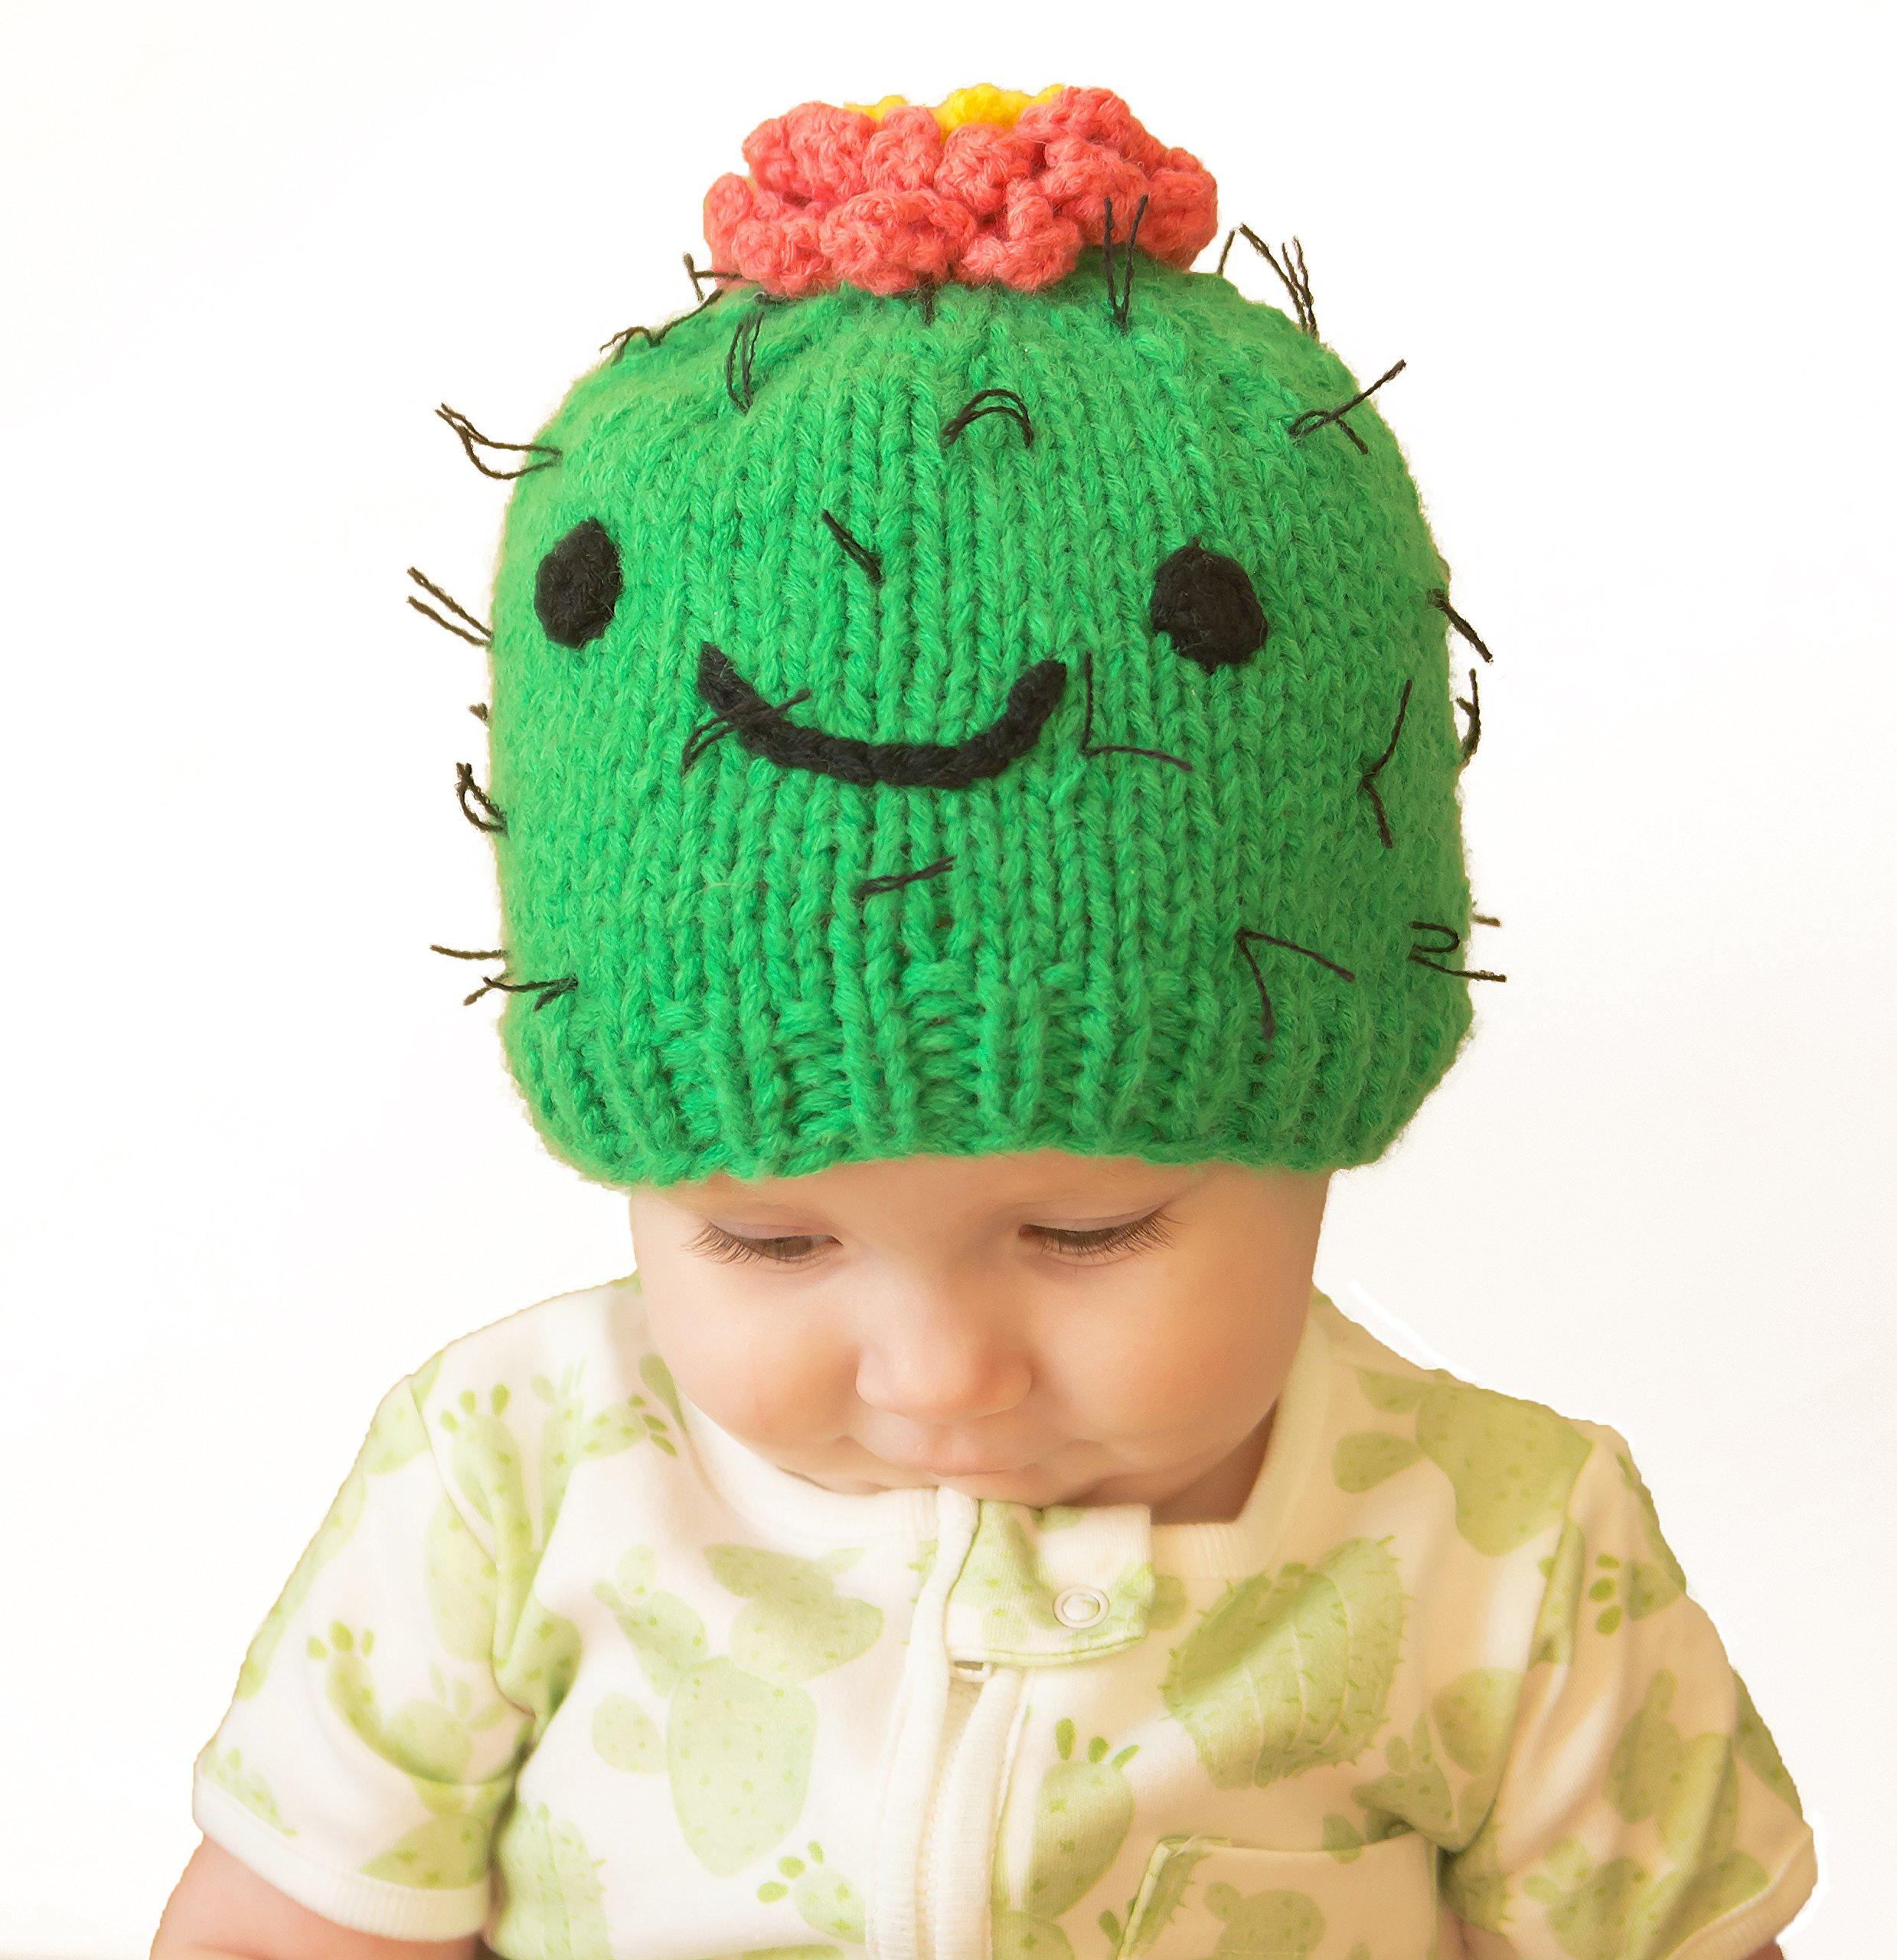 Huggalugs Baby and Toddler Prickly Succulent Cactus Knit Beanie Hat S Green by Huggalugs